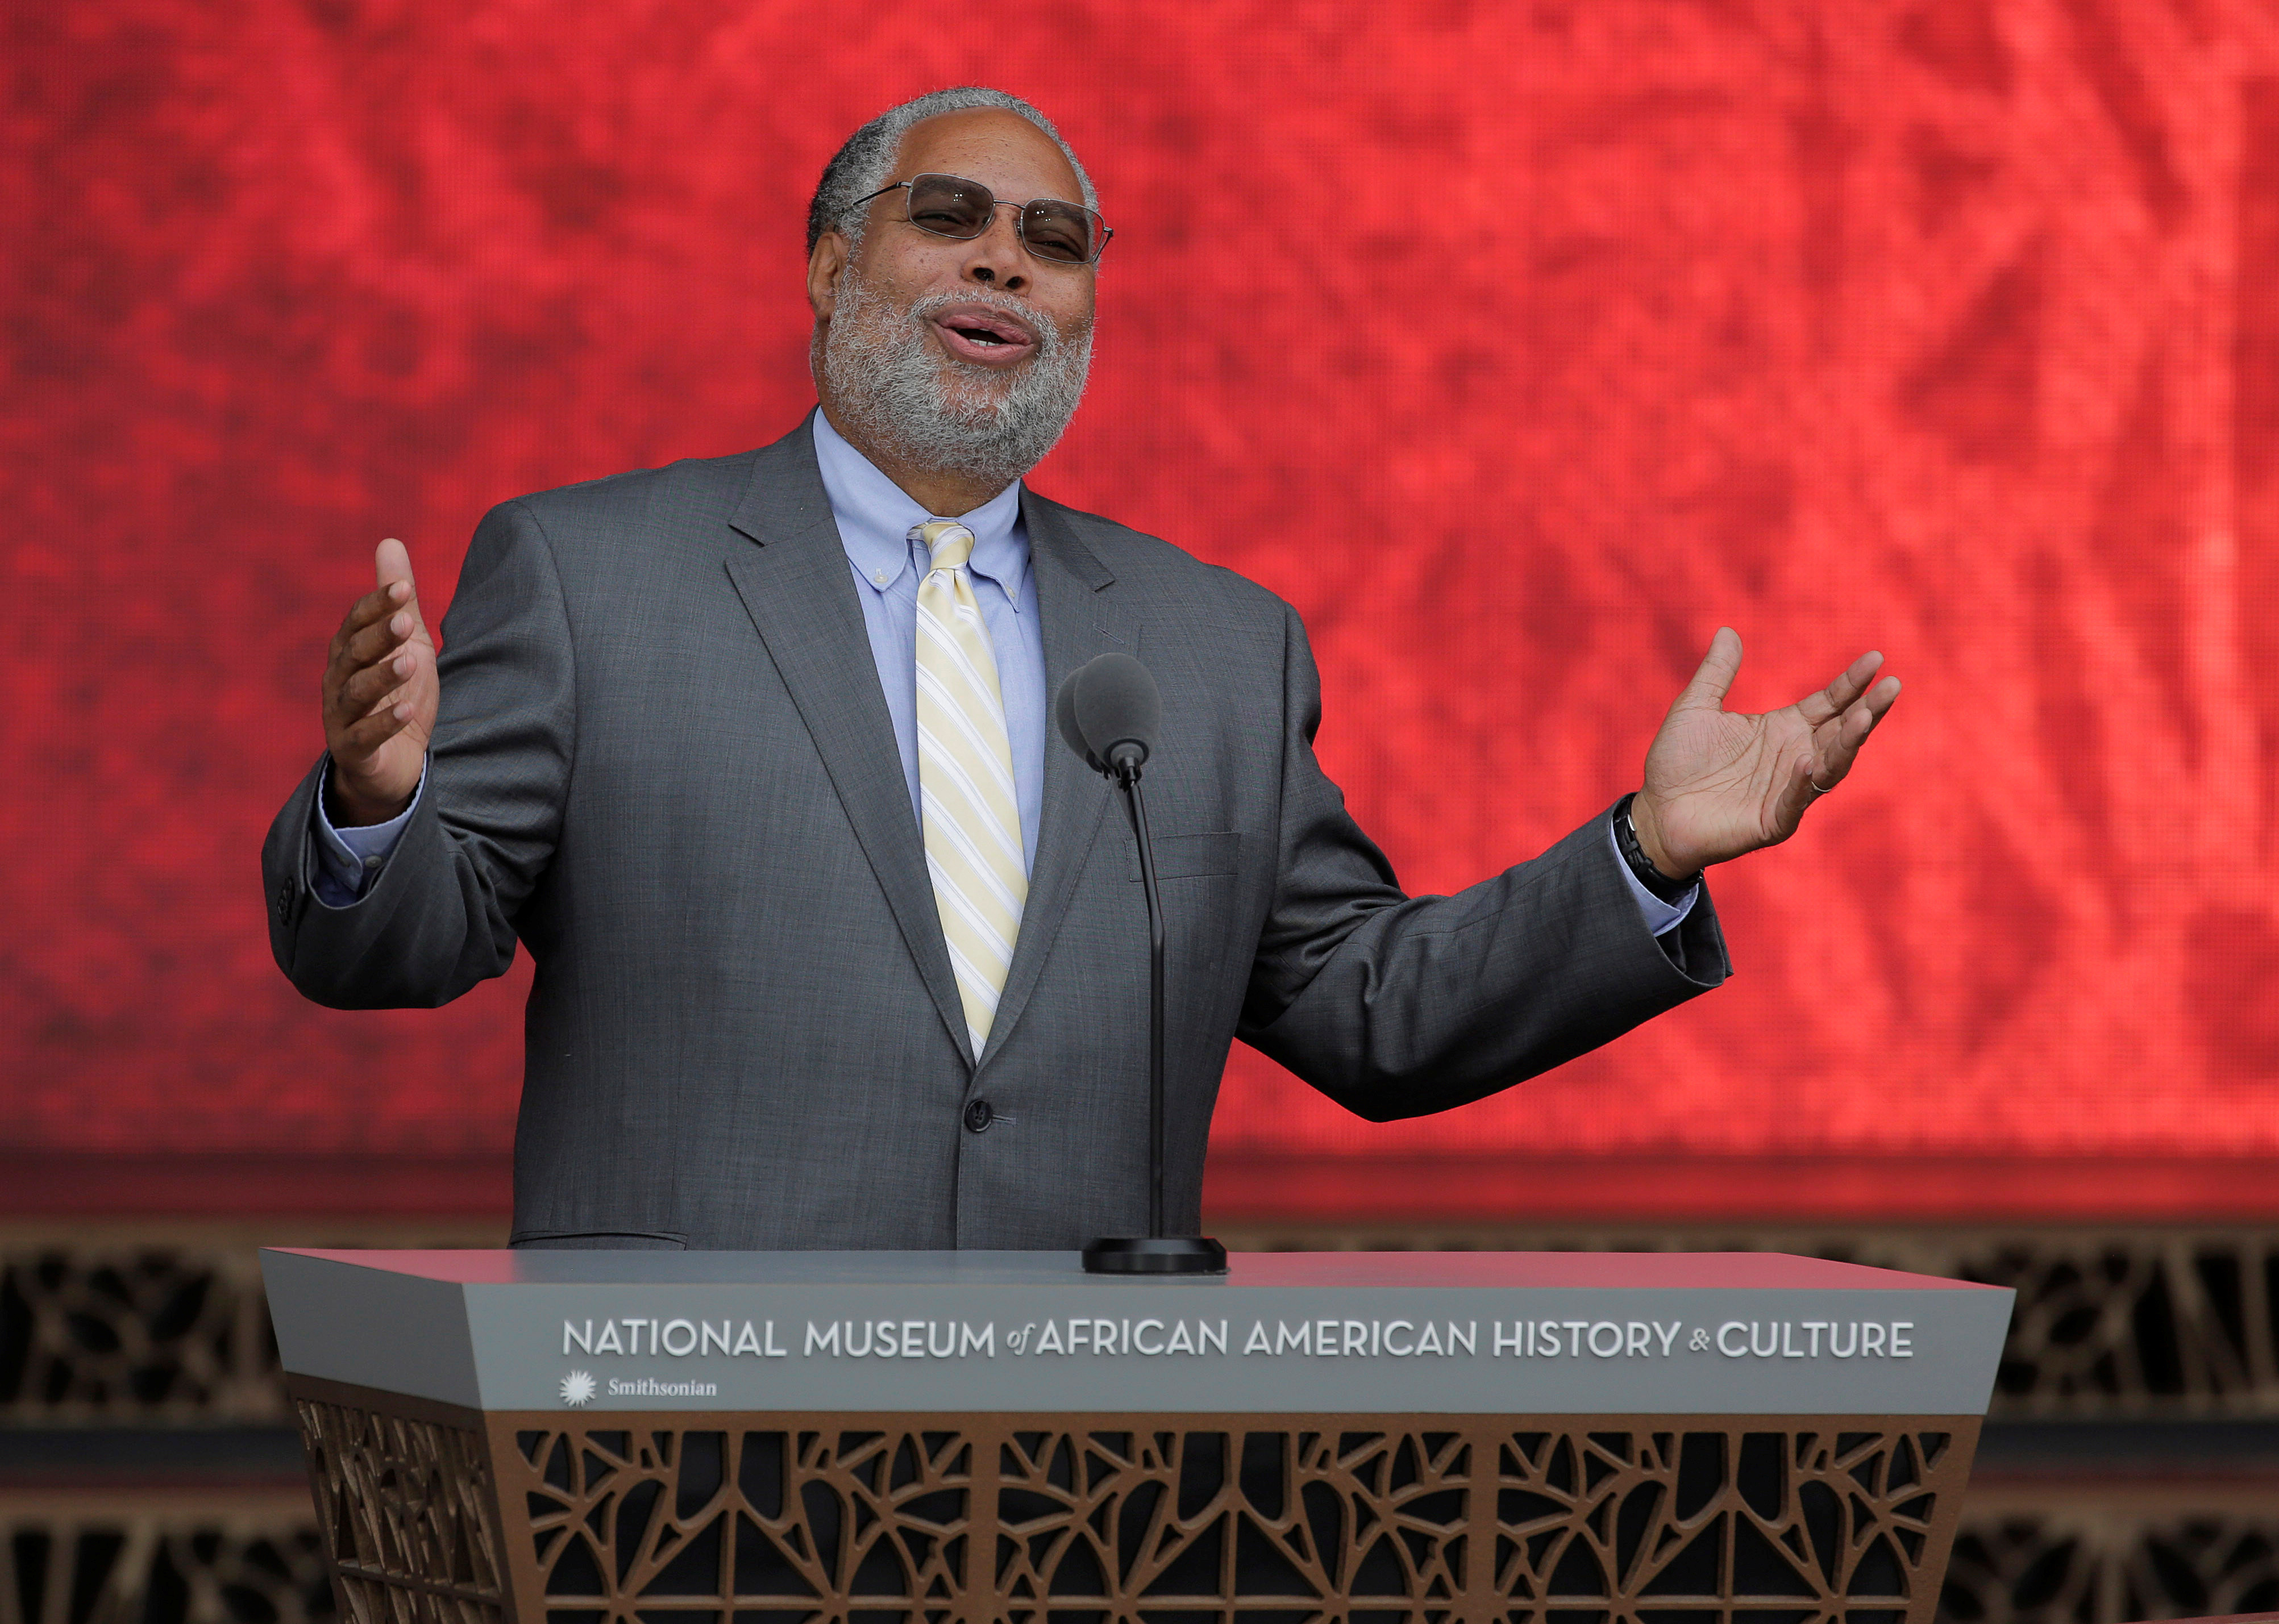 Lonnie Bunch, director of the Smithsonian's National Museum of African American History and Culture, speaks during the dedication of the museum in Washington, U.S., September 24, 2016. REUTERS/Joshua Roberts - S1AEUDEBSQAA